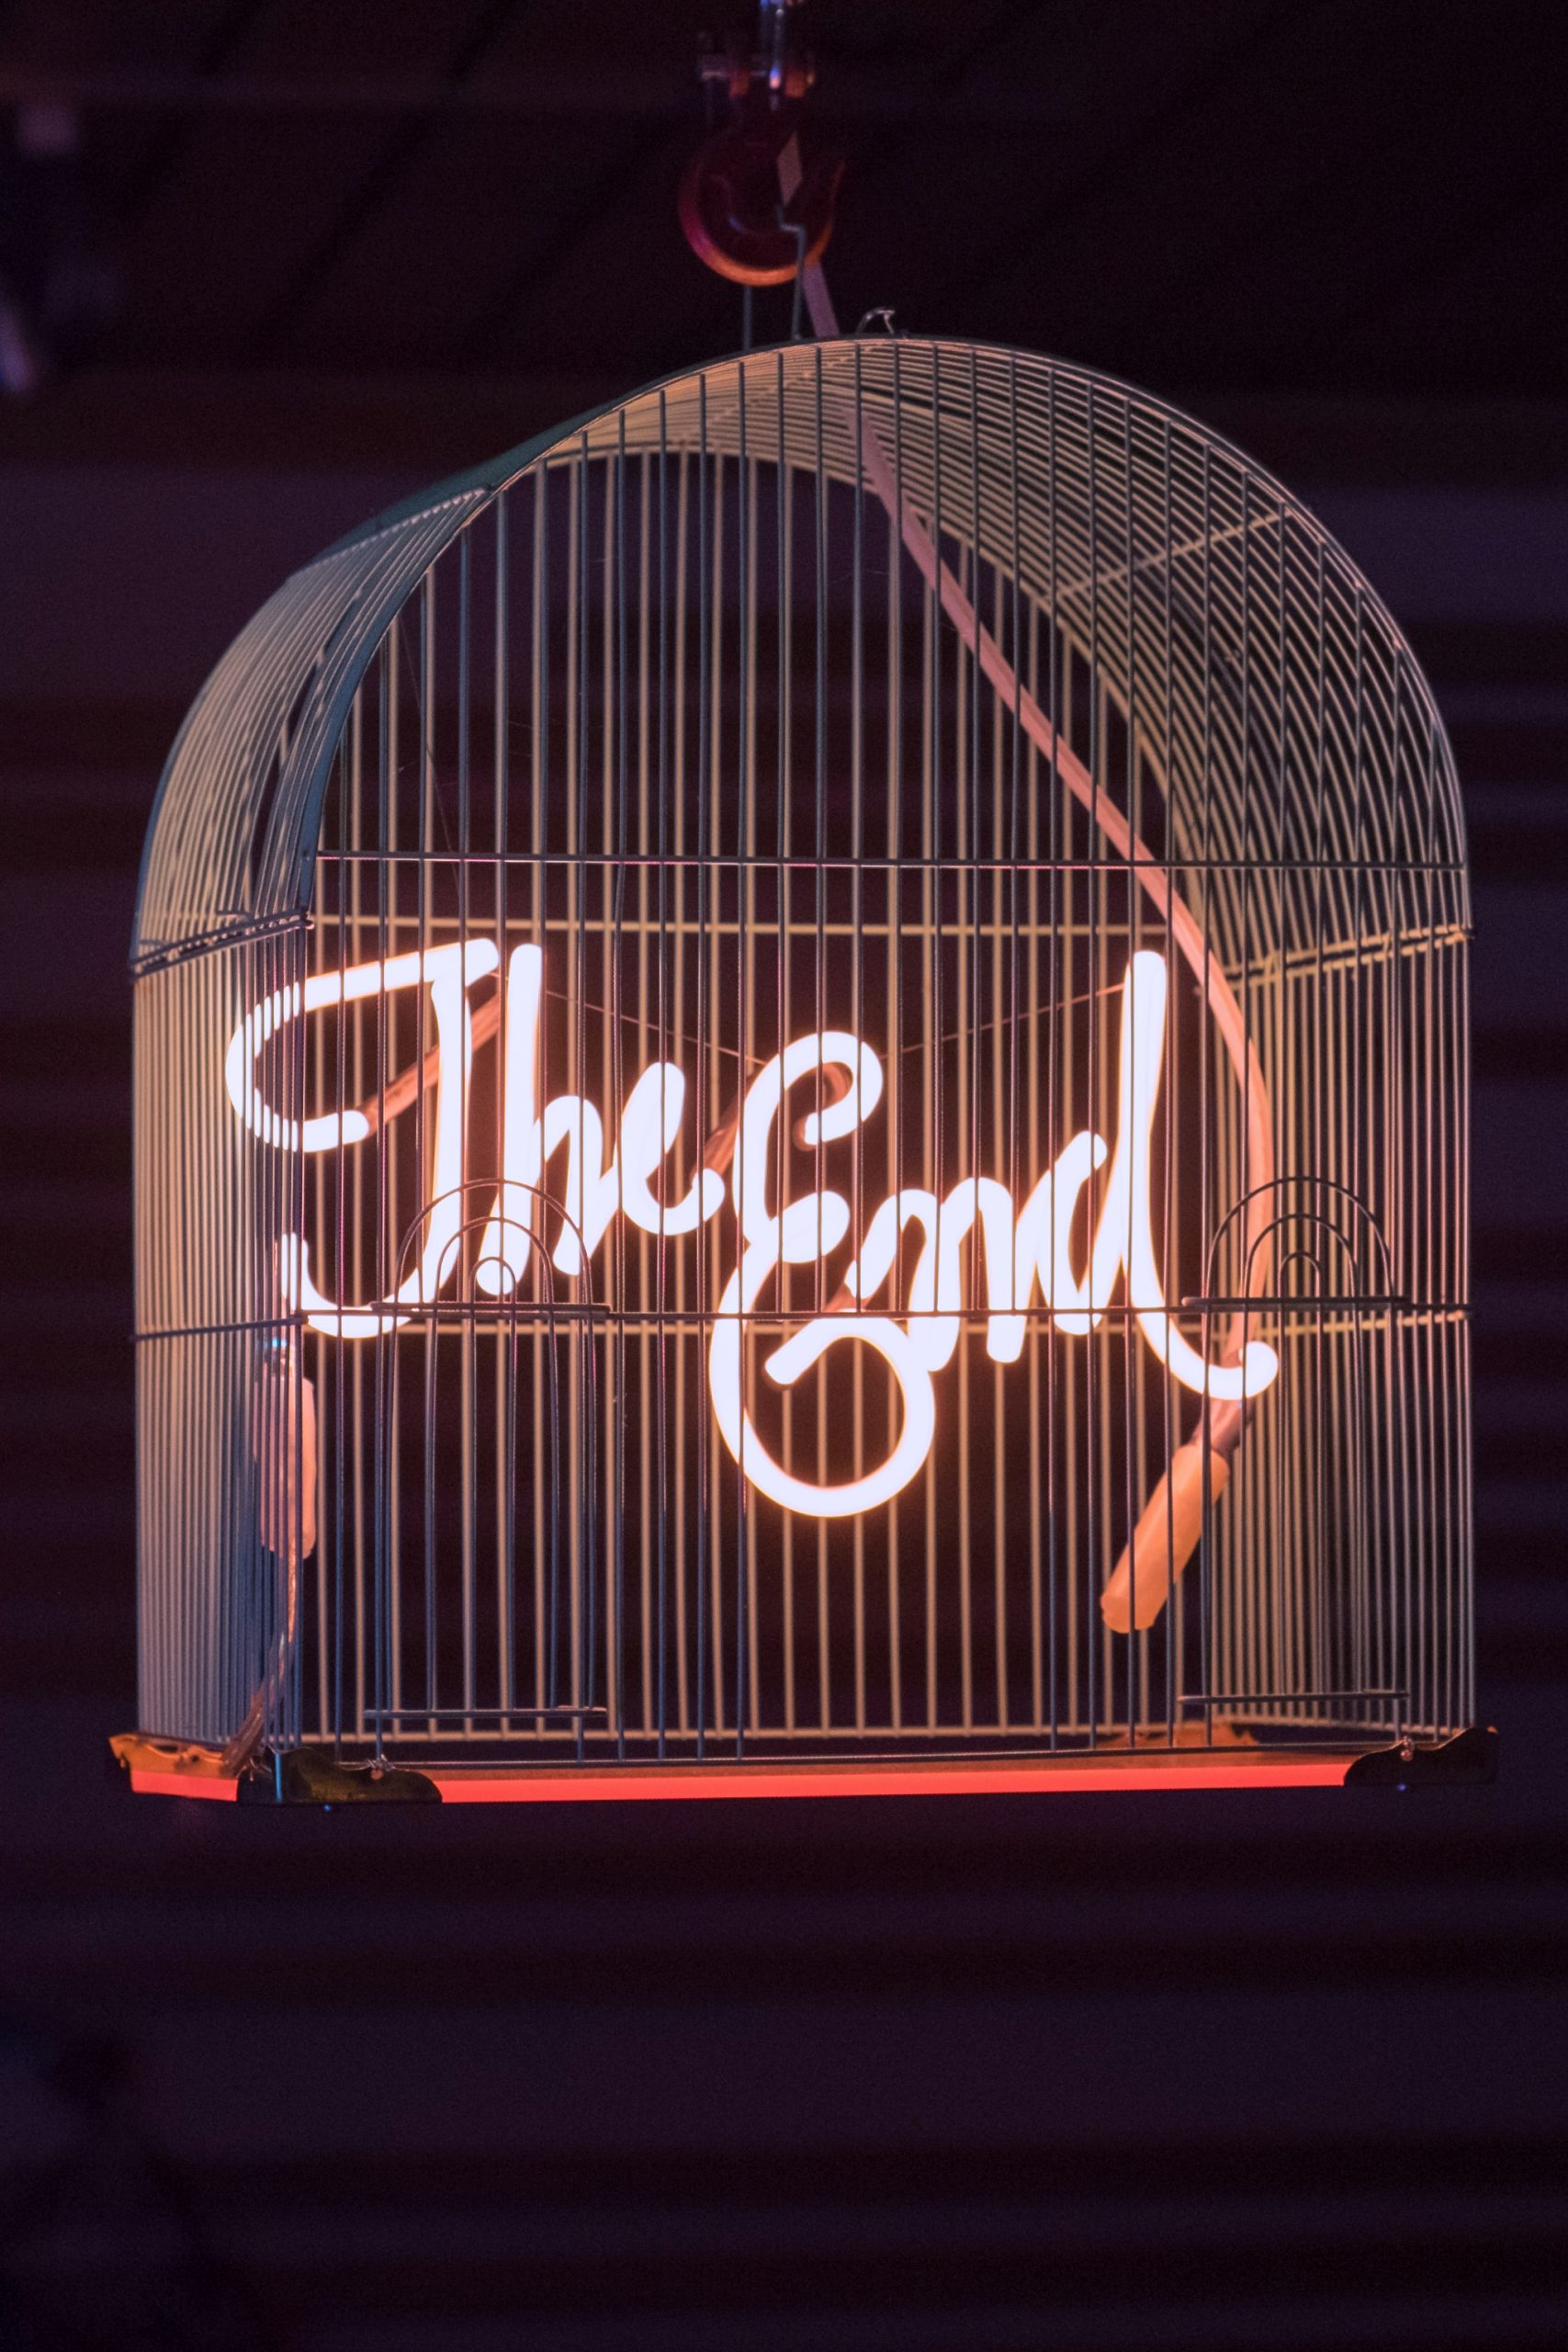 The End (Birdcage) by Olivia Steele